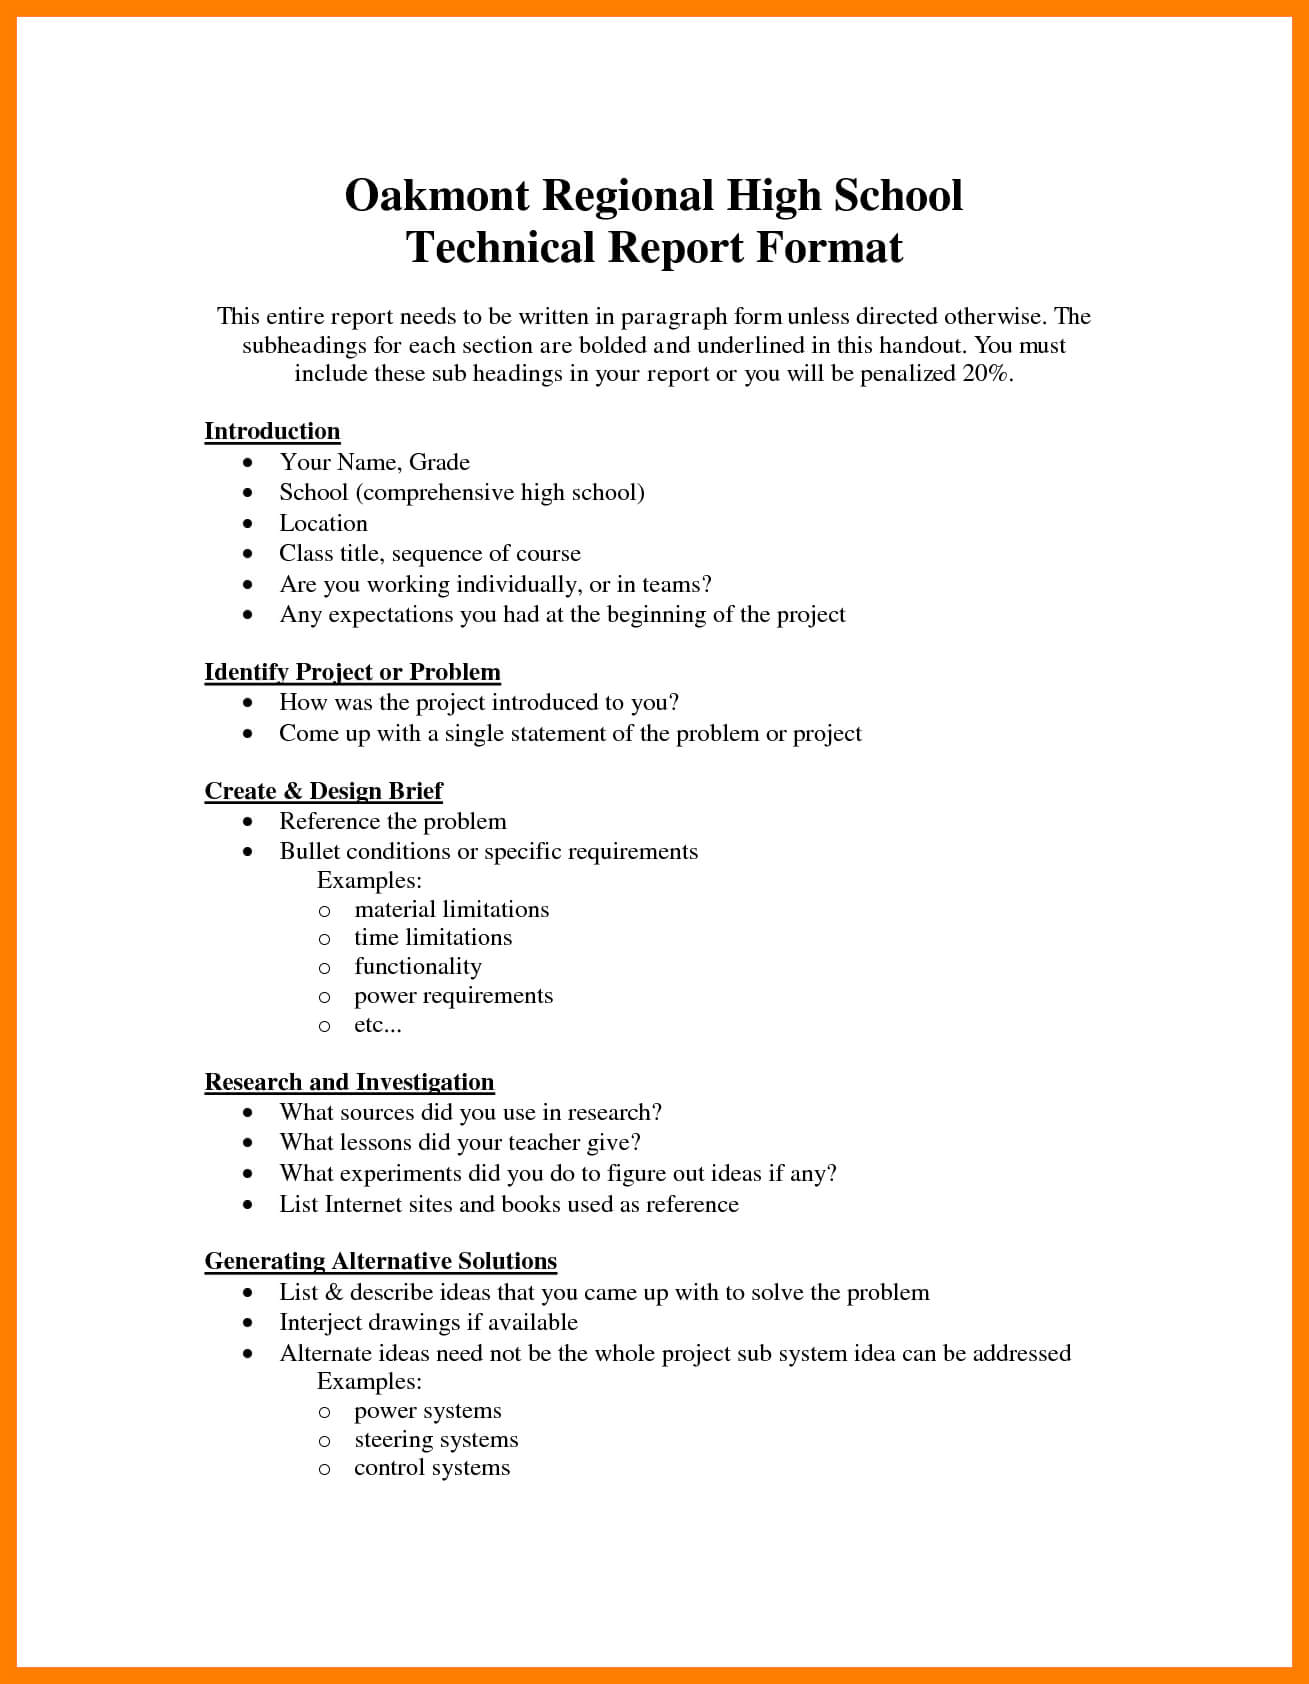 Template For Technical Report - Cumed In Template For Technical Report